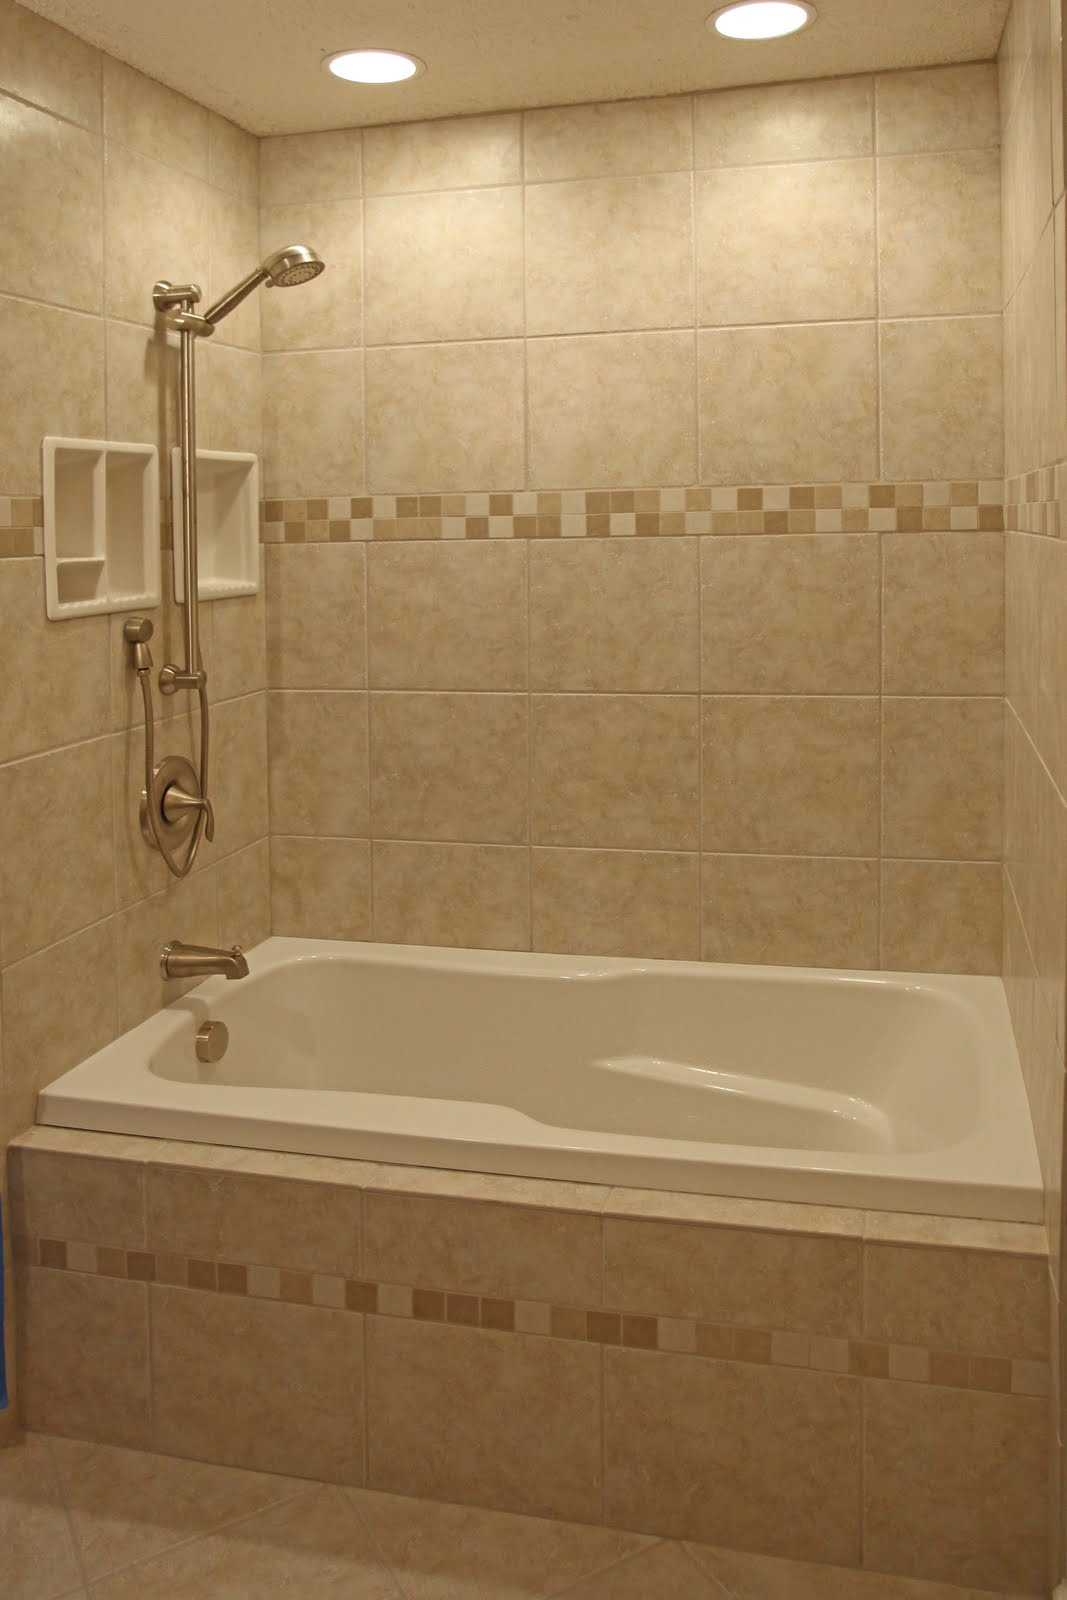 Bathroom remodeling design ideas tile shower niches Bathroom tile gallery